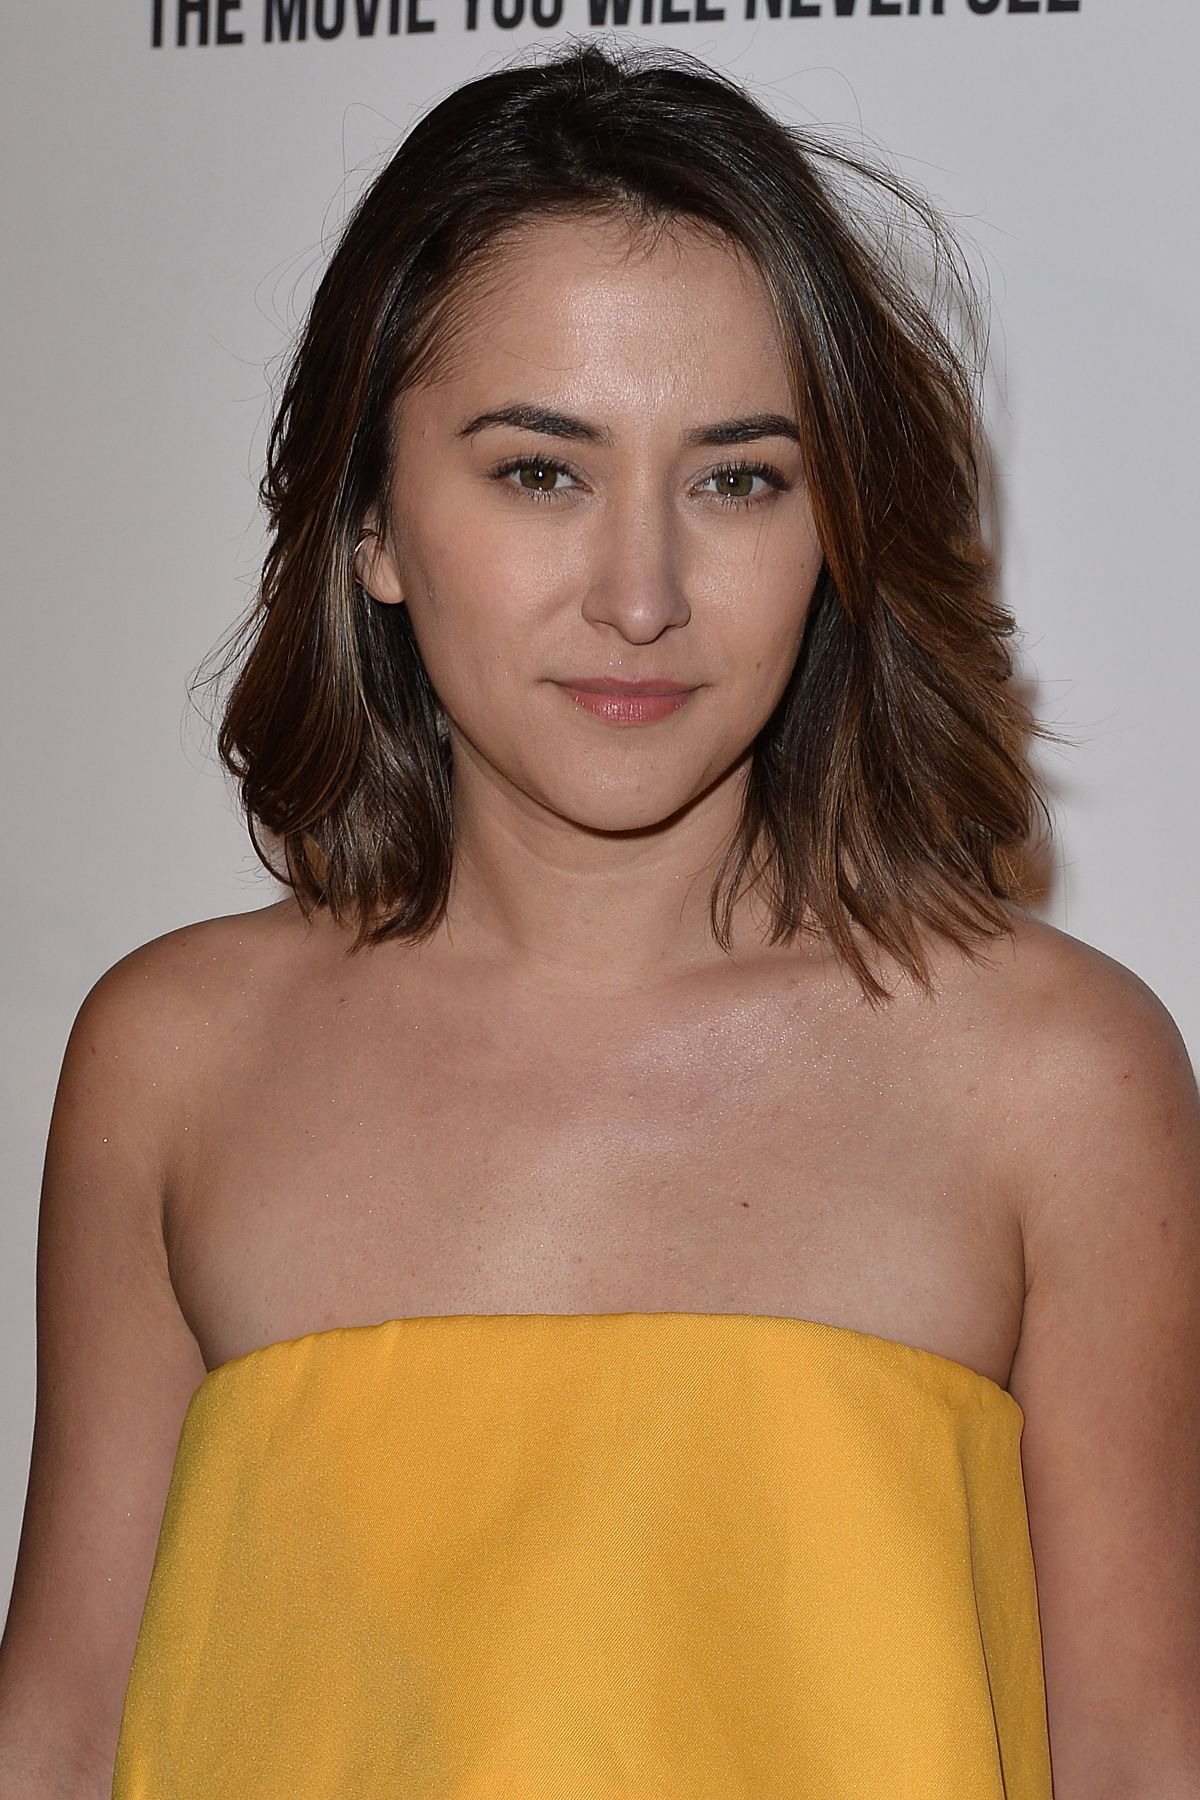 ZELDA WILLIAMS at Louis XIII Celebration of 100 Years The Movie You Will Never See in Los Angeles 11/18/2015